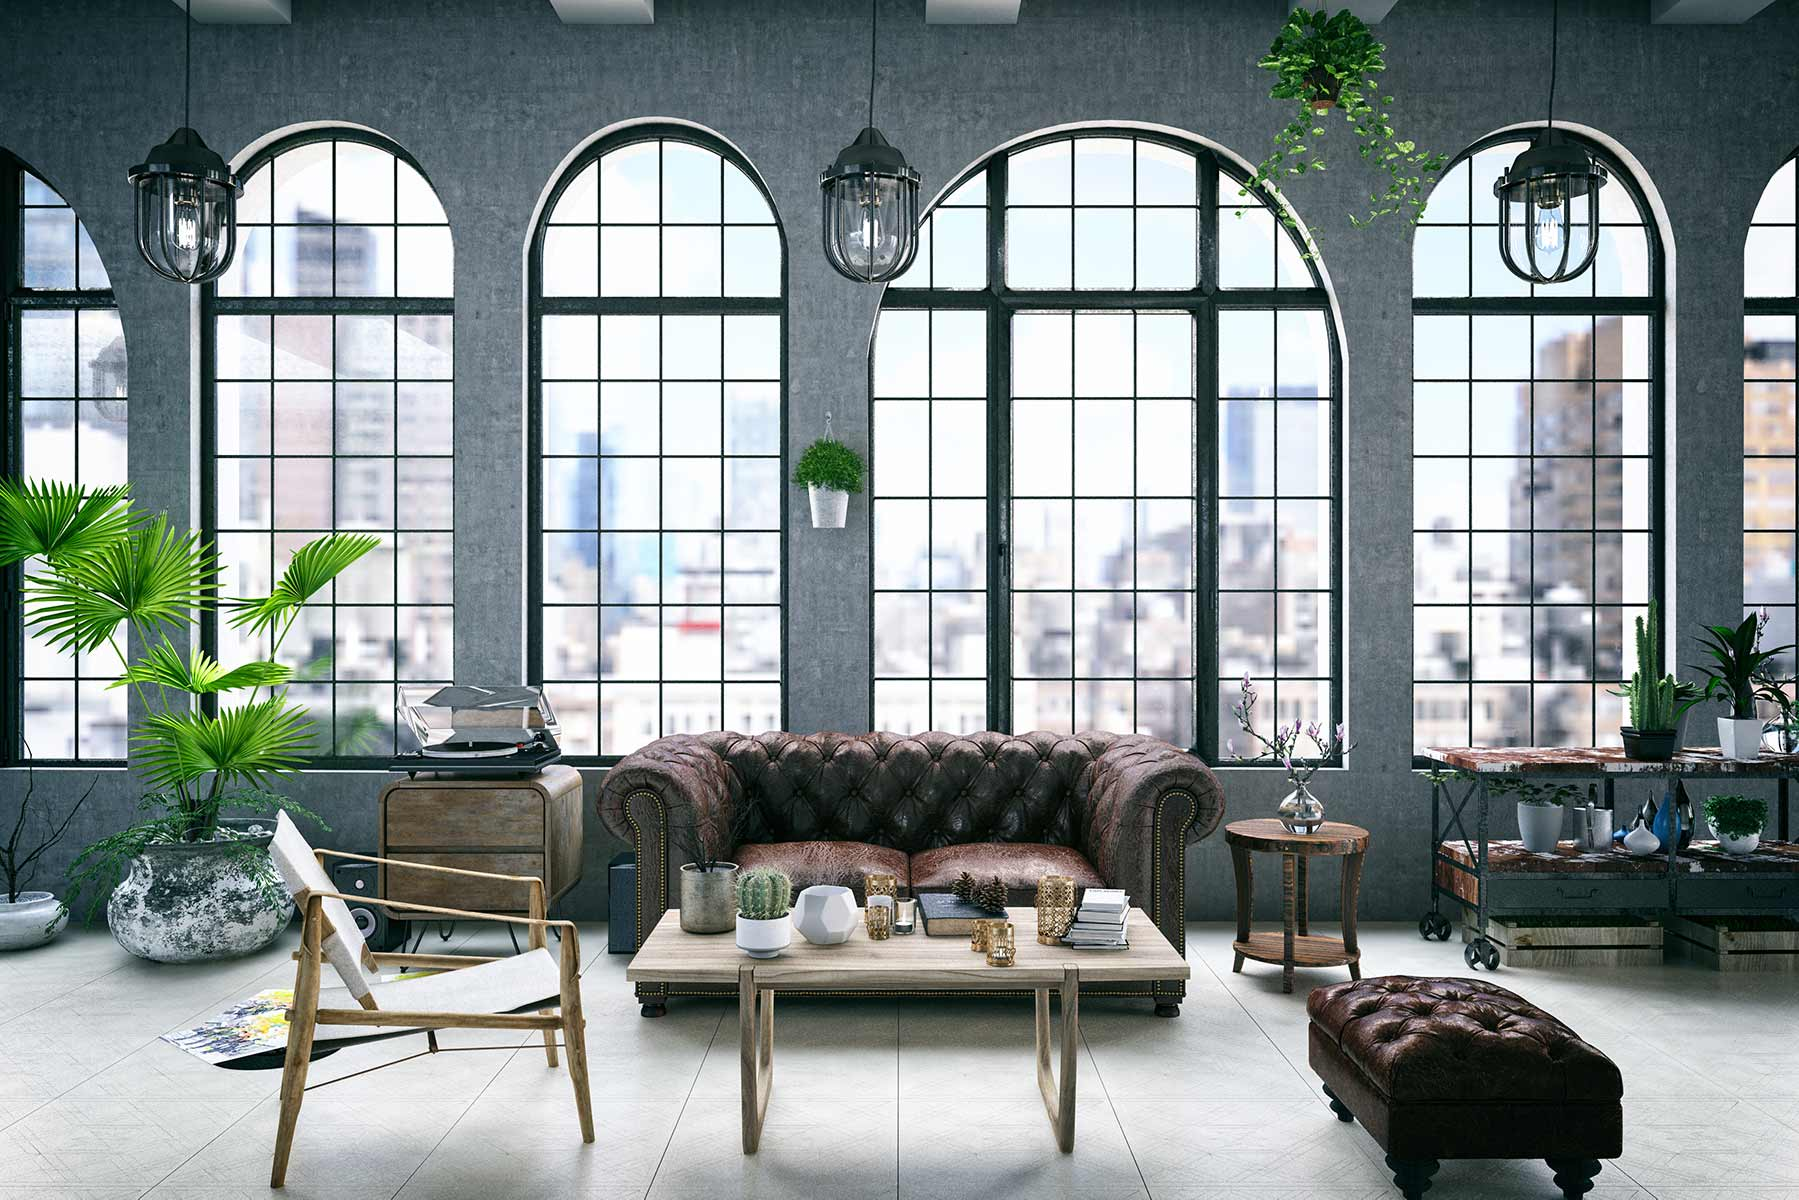 A loft-style living room appointed in leather and glass